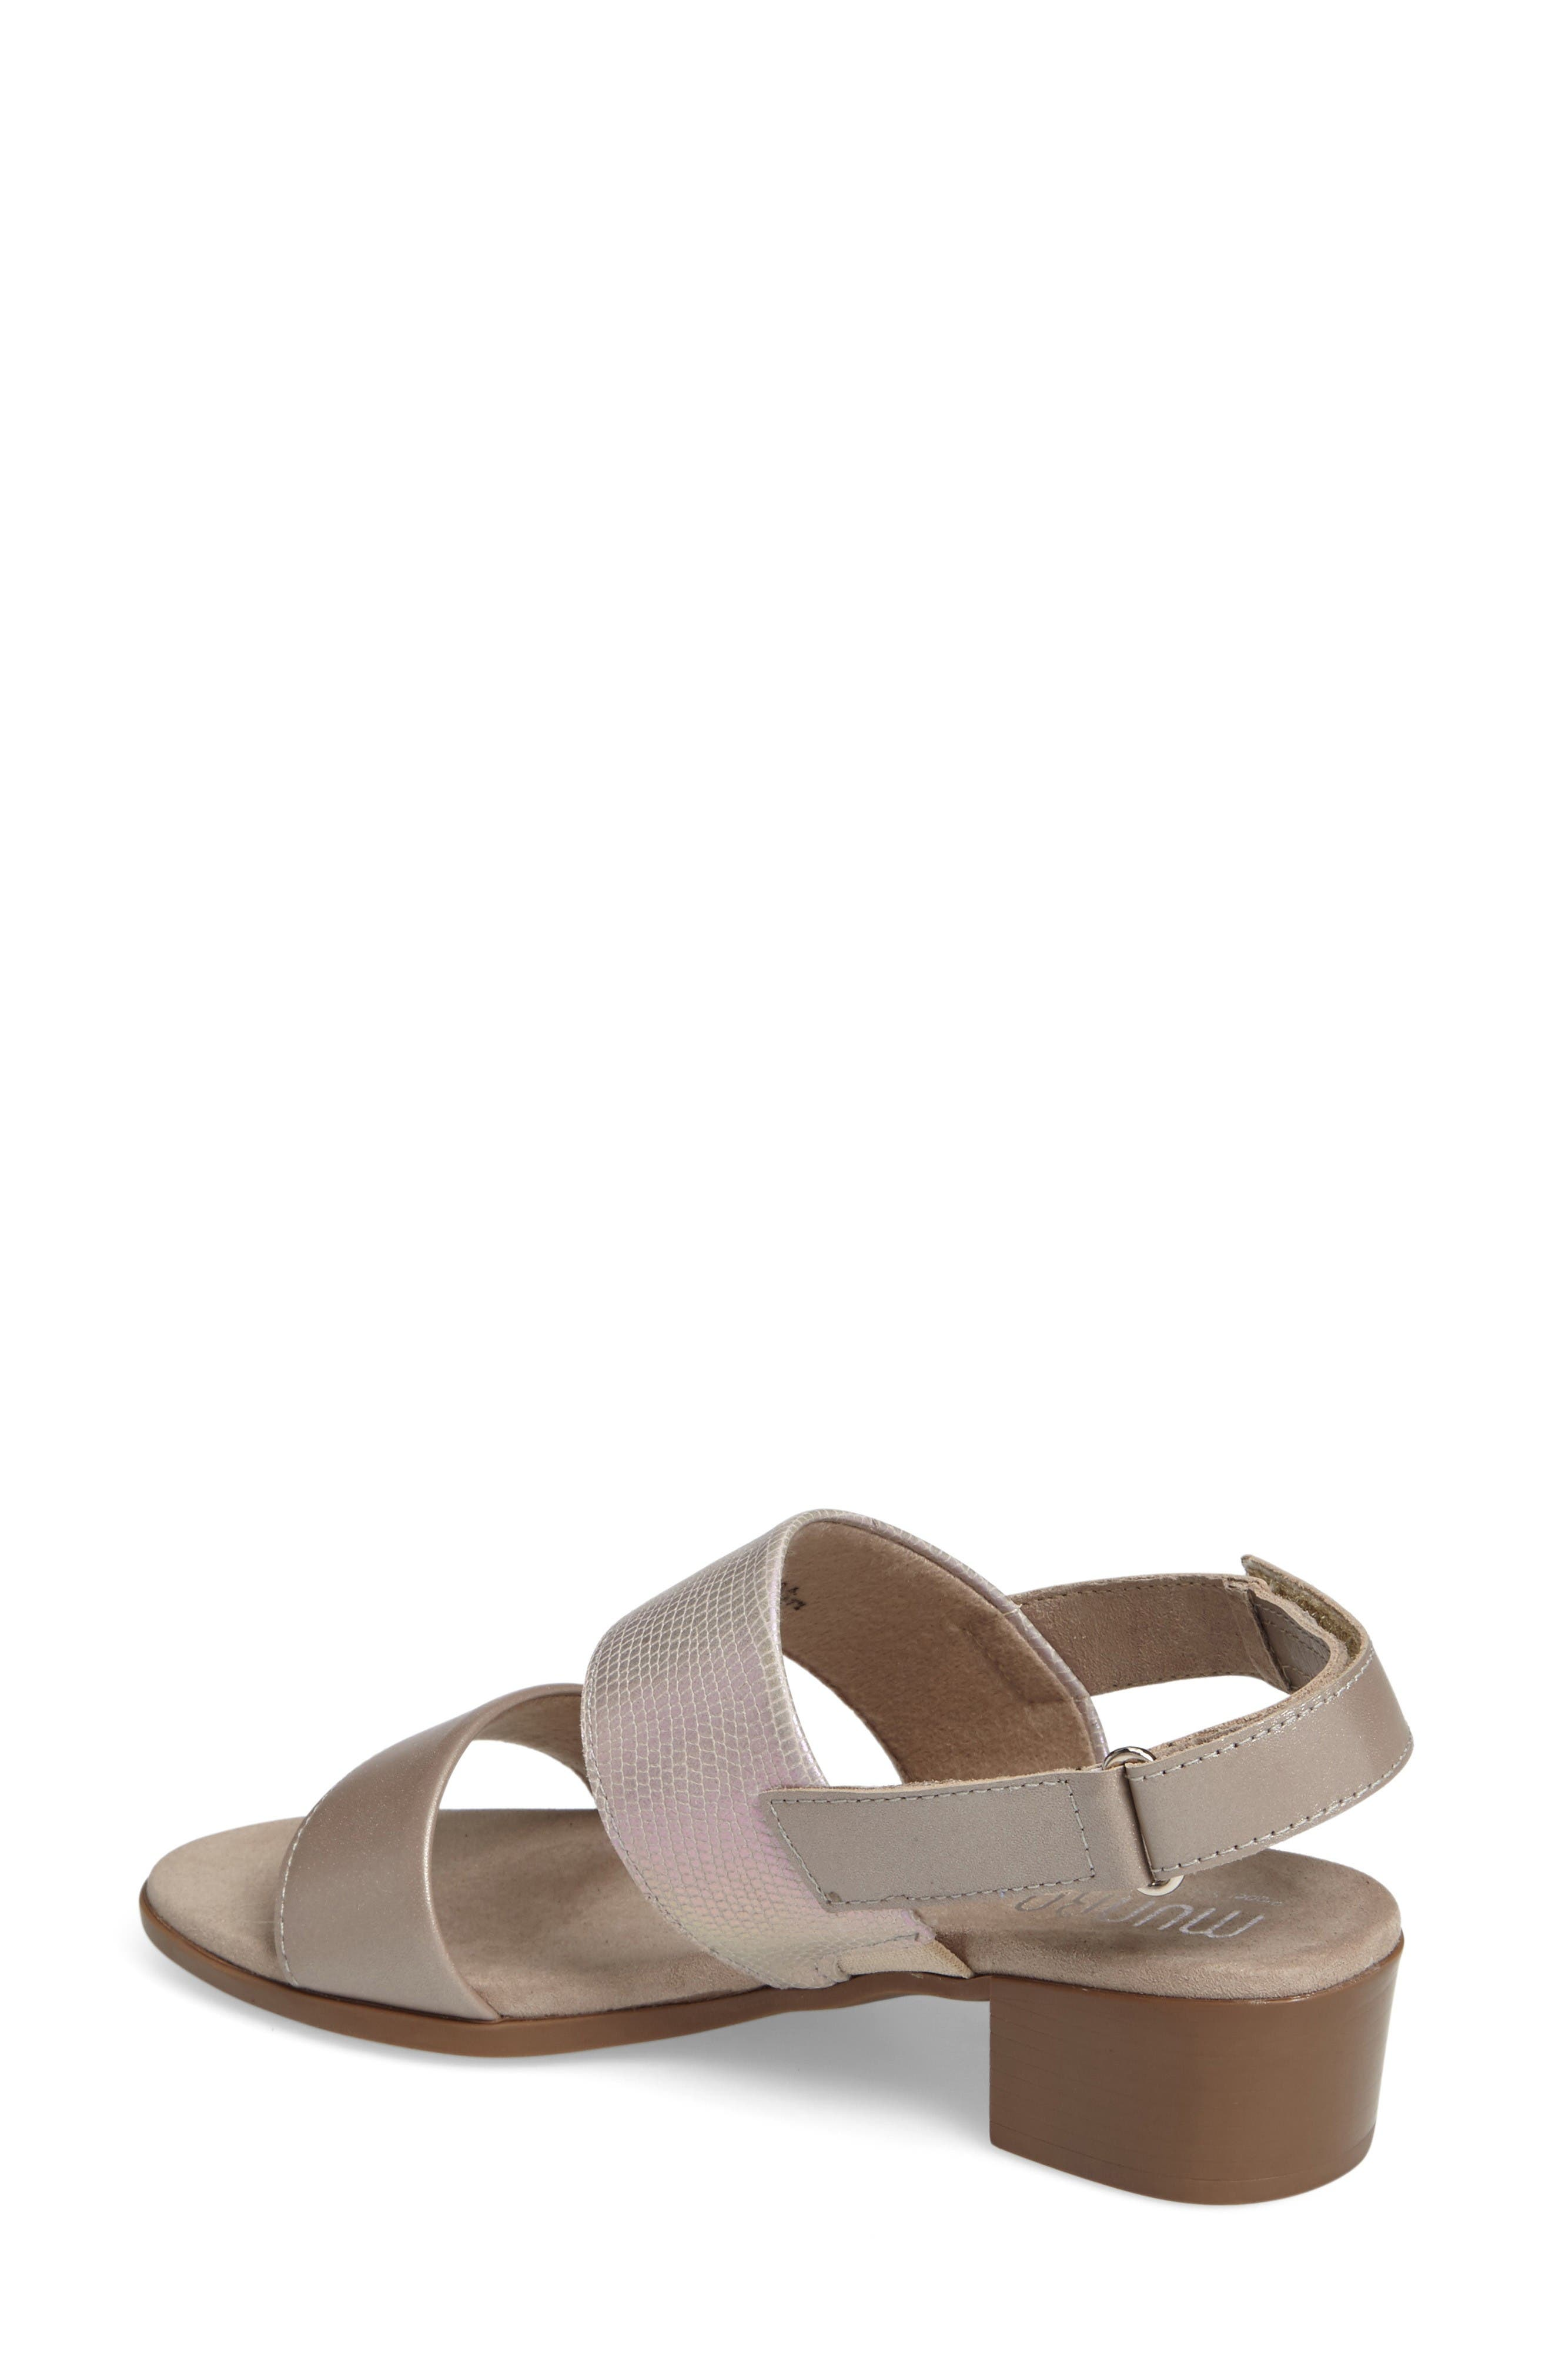 Kristal Sandal,                             Alternate thumbnail 2, color,                             Pearl Metallic Lizard Leather